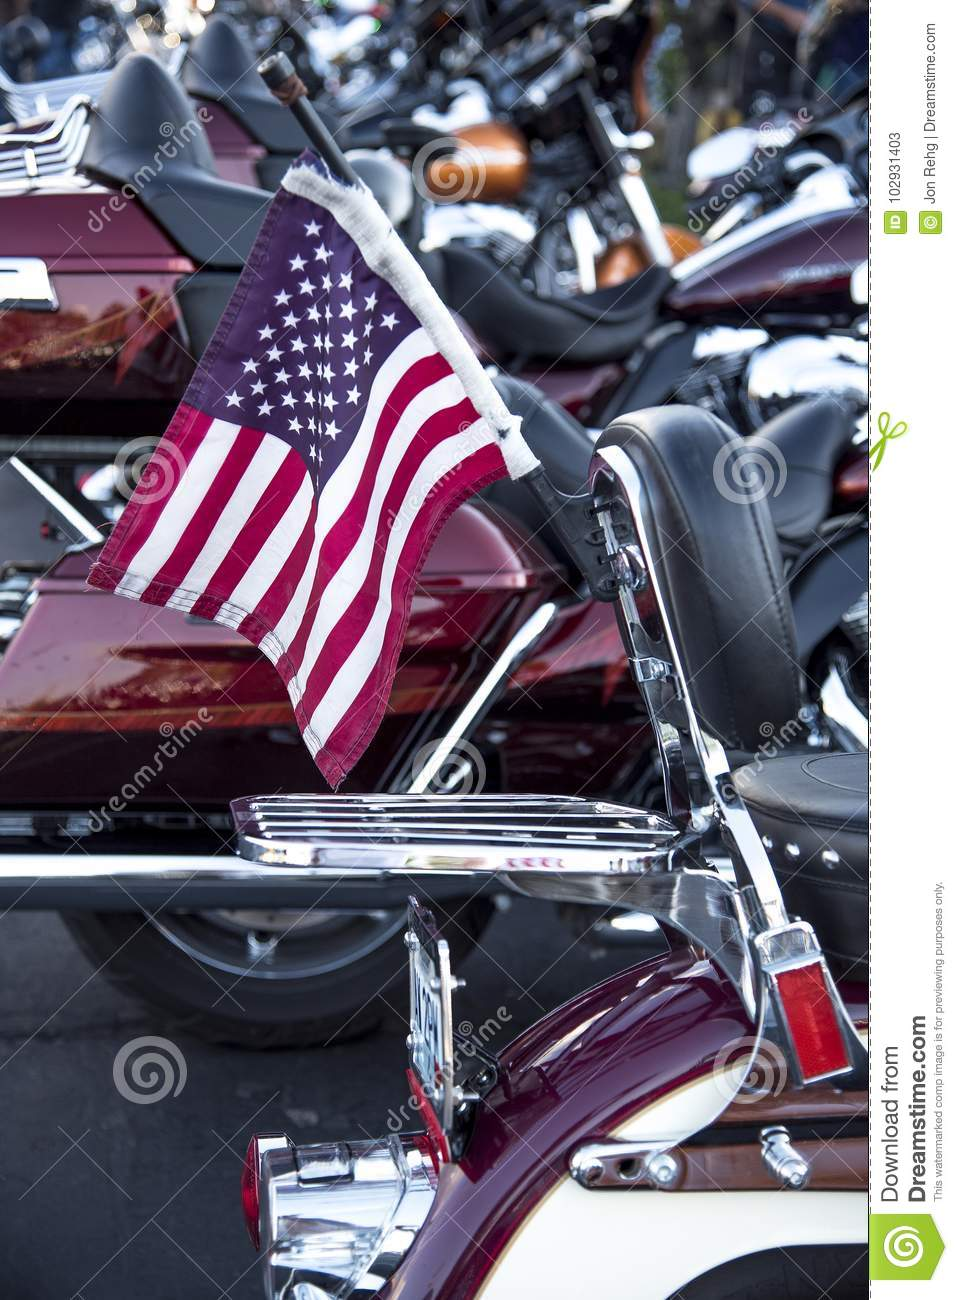 Small Red White And Blue American Flag On Back Of Motorcycle